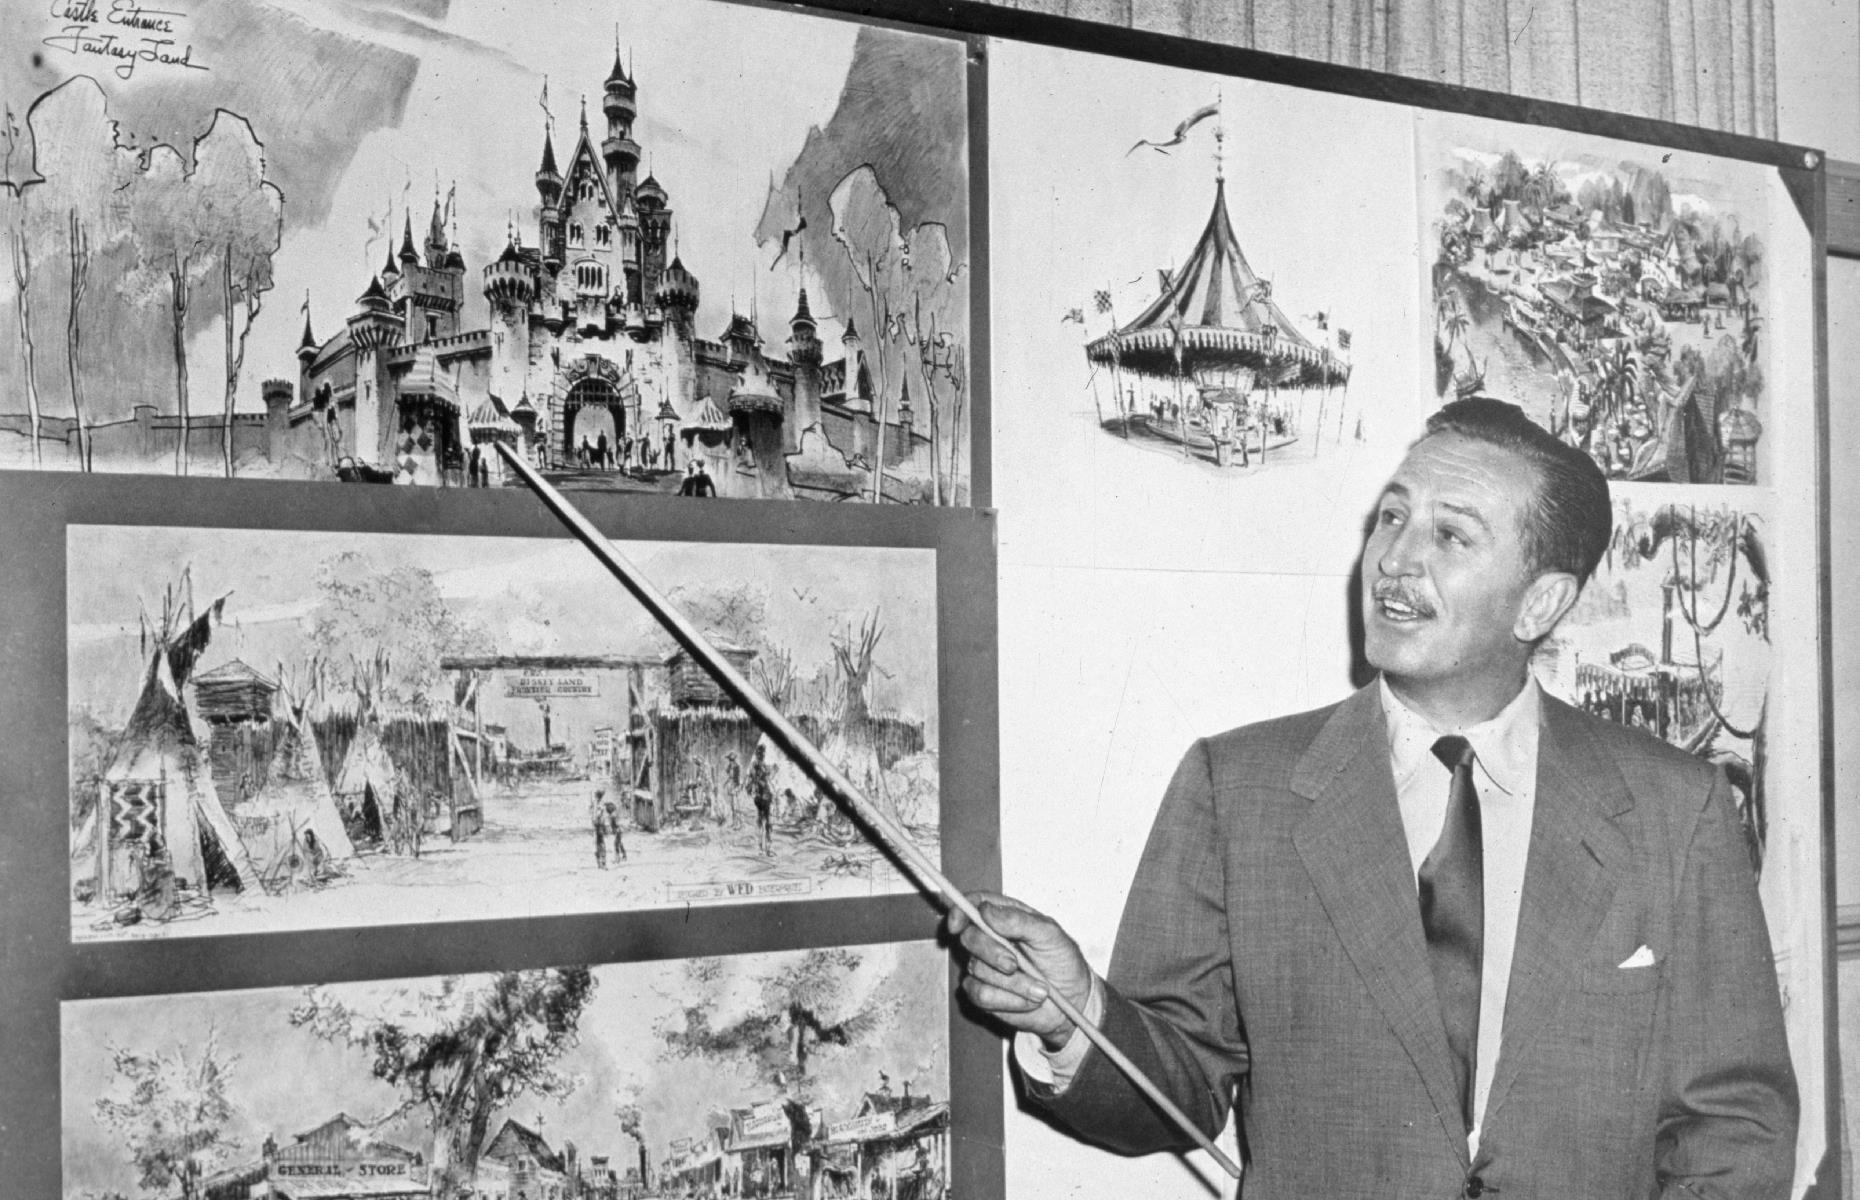 Slide 12 of 47: Though Florida's Disney parks have now dwarfed their Californian sisters in size, Disneyland in Anaheim will always be the oldest of these world-famous sites. It was, of course, dreamed up by animator extraordinaire Walt Disney himself, who was inspired by parks and attractions around the world. He's seen here with park sketches in the 1950s – you can spot the towers and turrets of Sleeping Beauty Castle and the buildings of Frontierland in the bottom left.